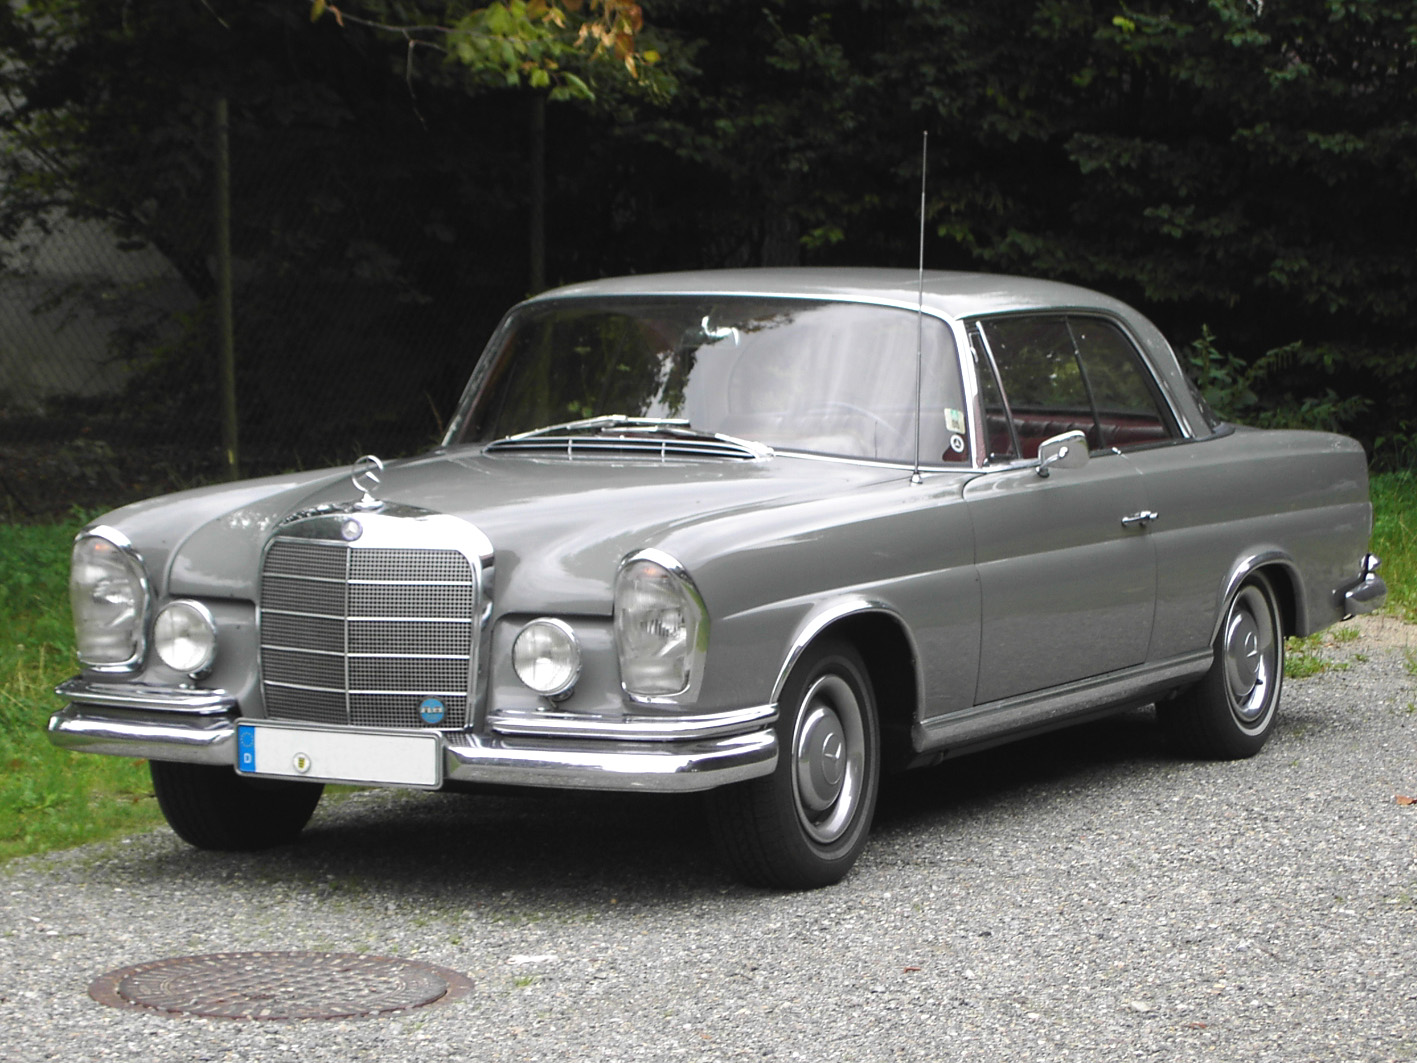 mercedes-benz 220 seb coupe-pic. 1